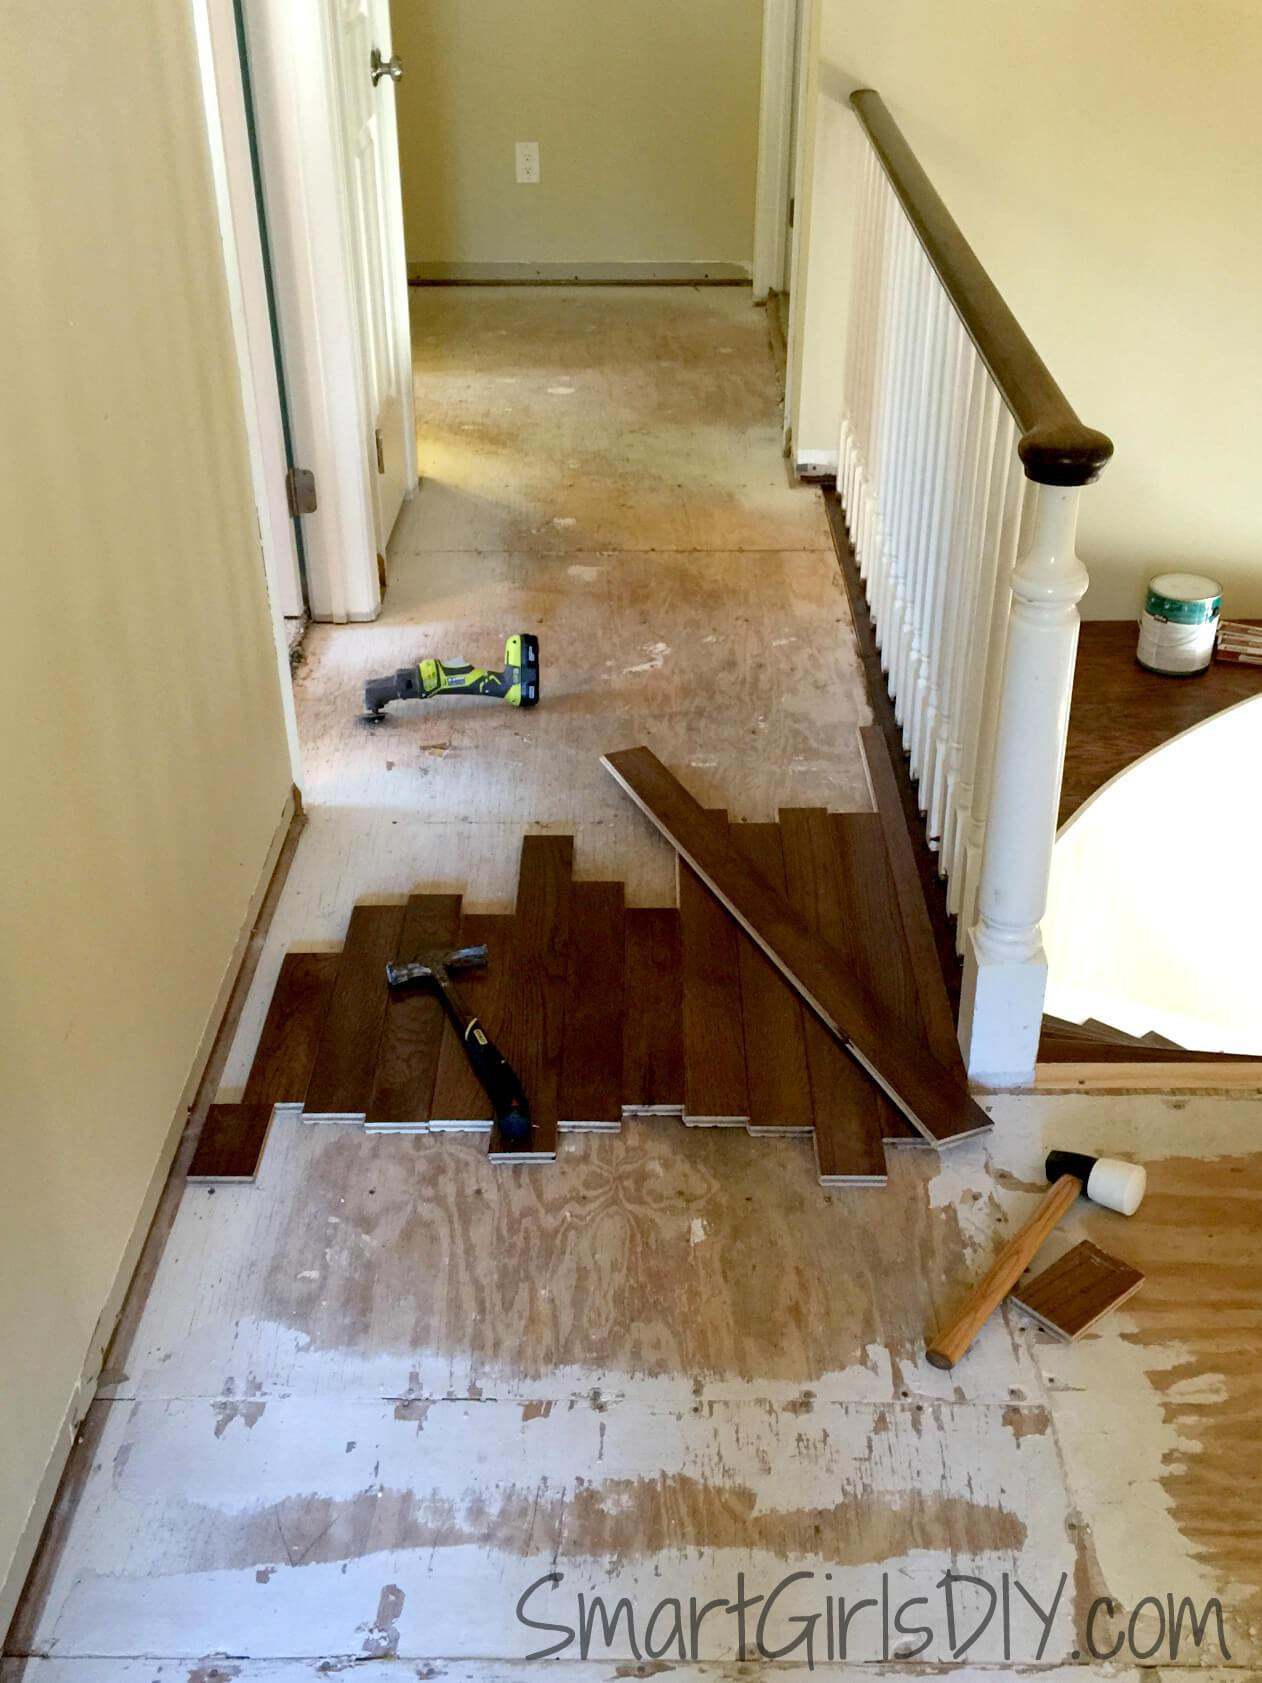 How Much Does It Cost to Hardwood Floor A House Of Upstairs Hallway 1 Installing Hardwood Floors within Laying Out Bruce Hardwood Flooring